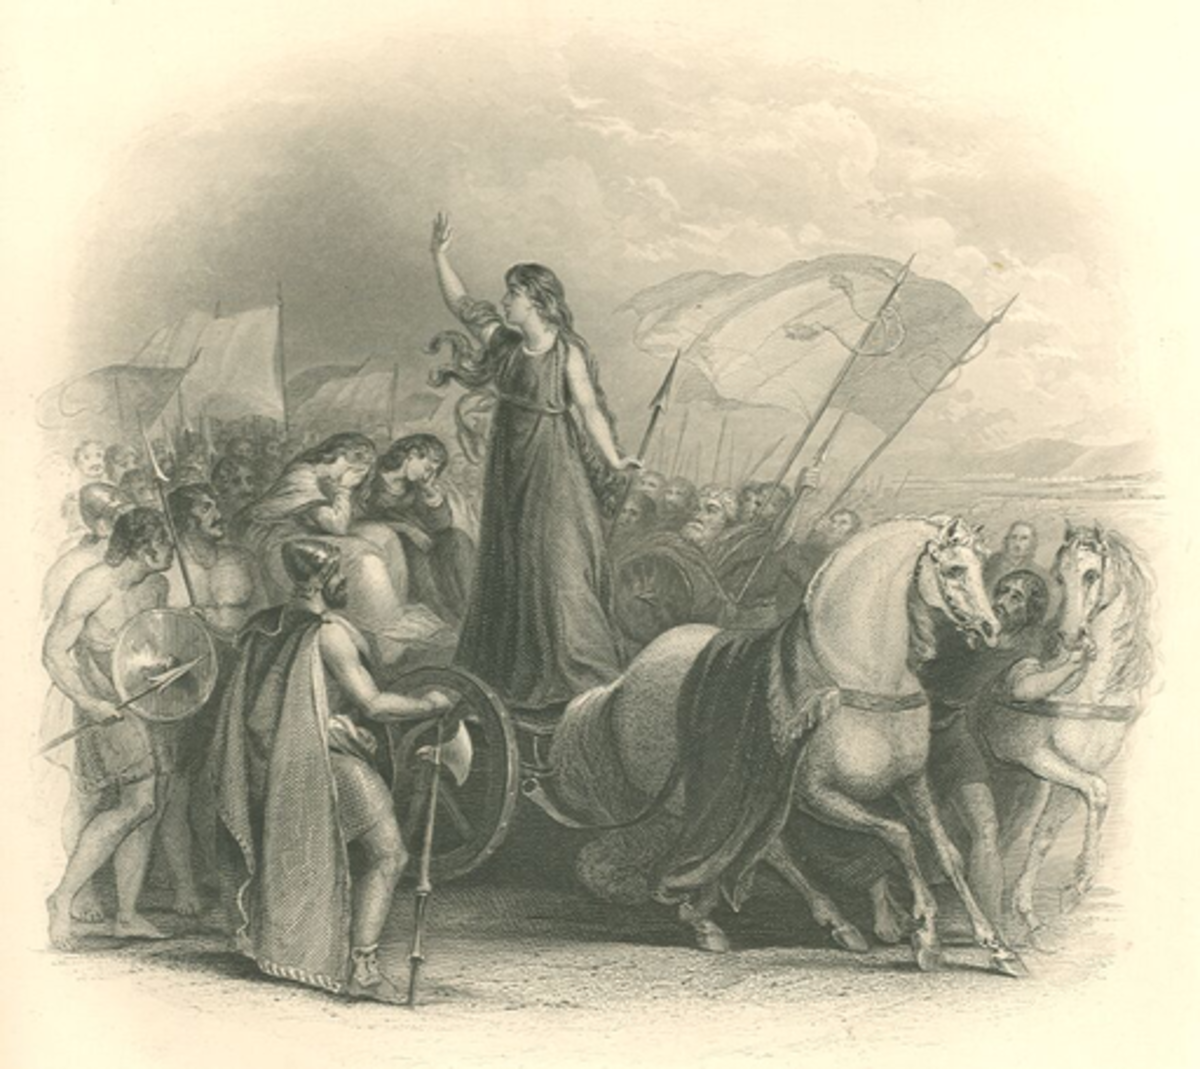 Boudicca Rallies her Forces